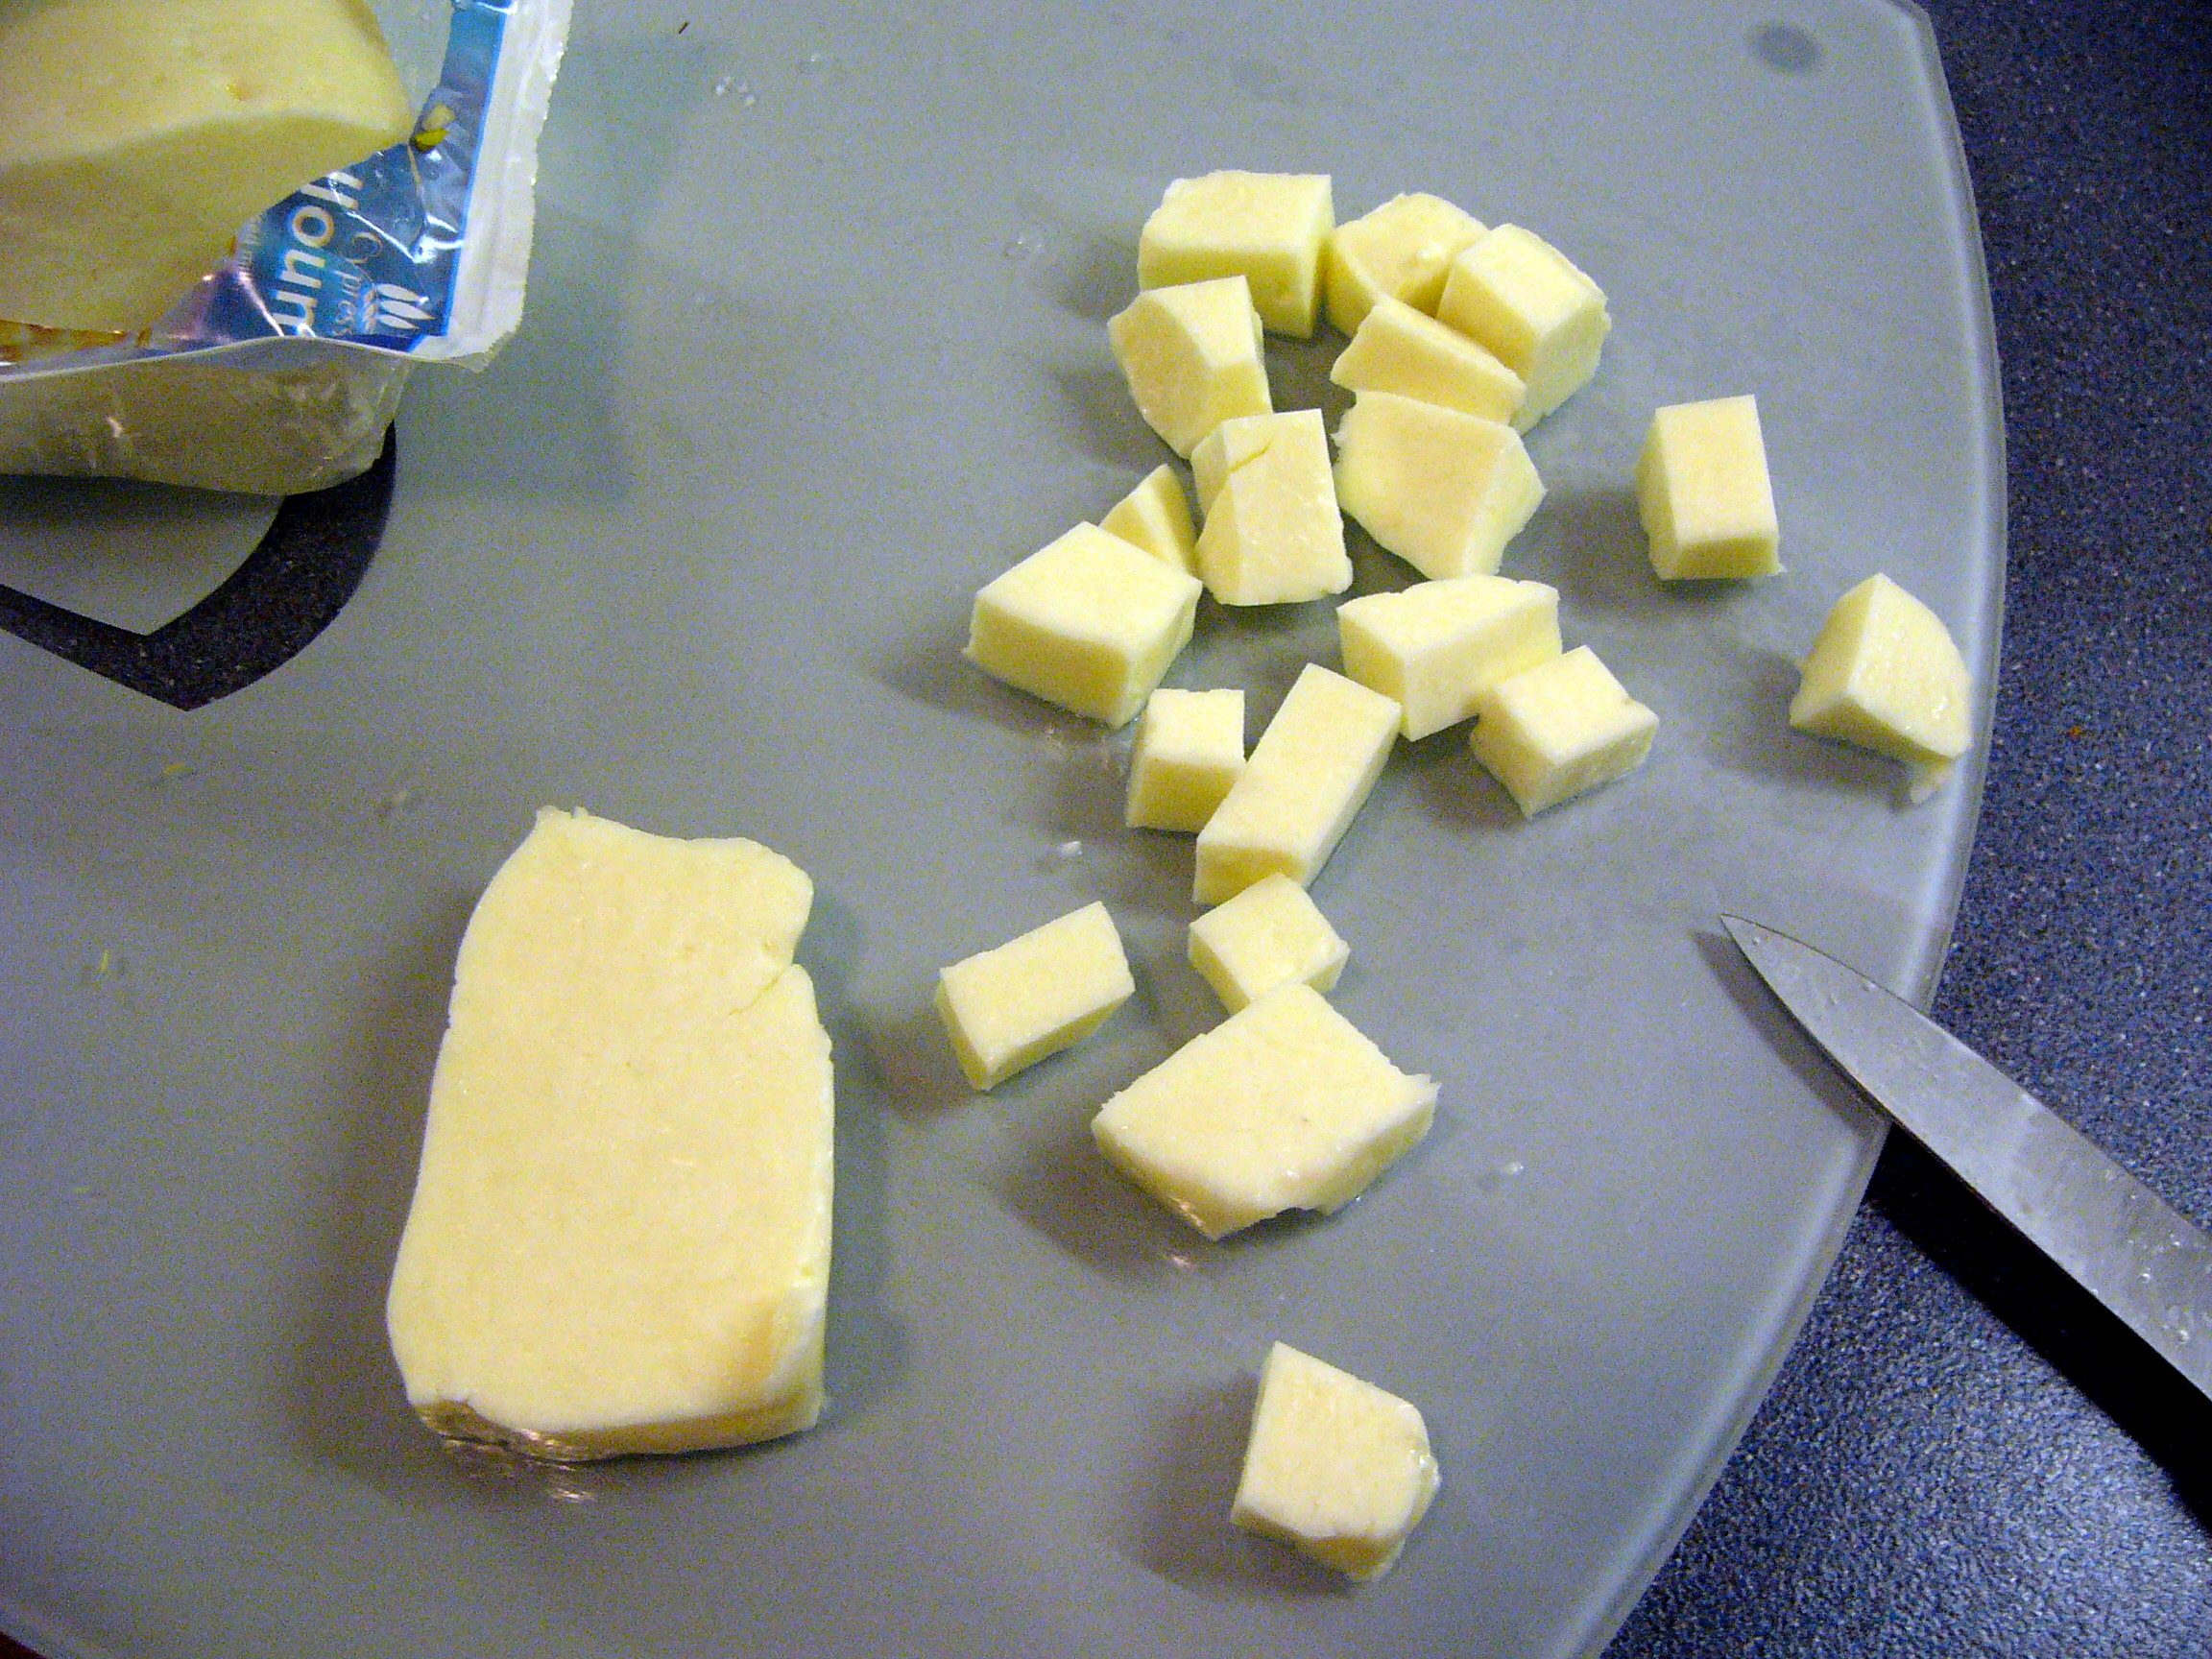 Halloumi being cubed